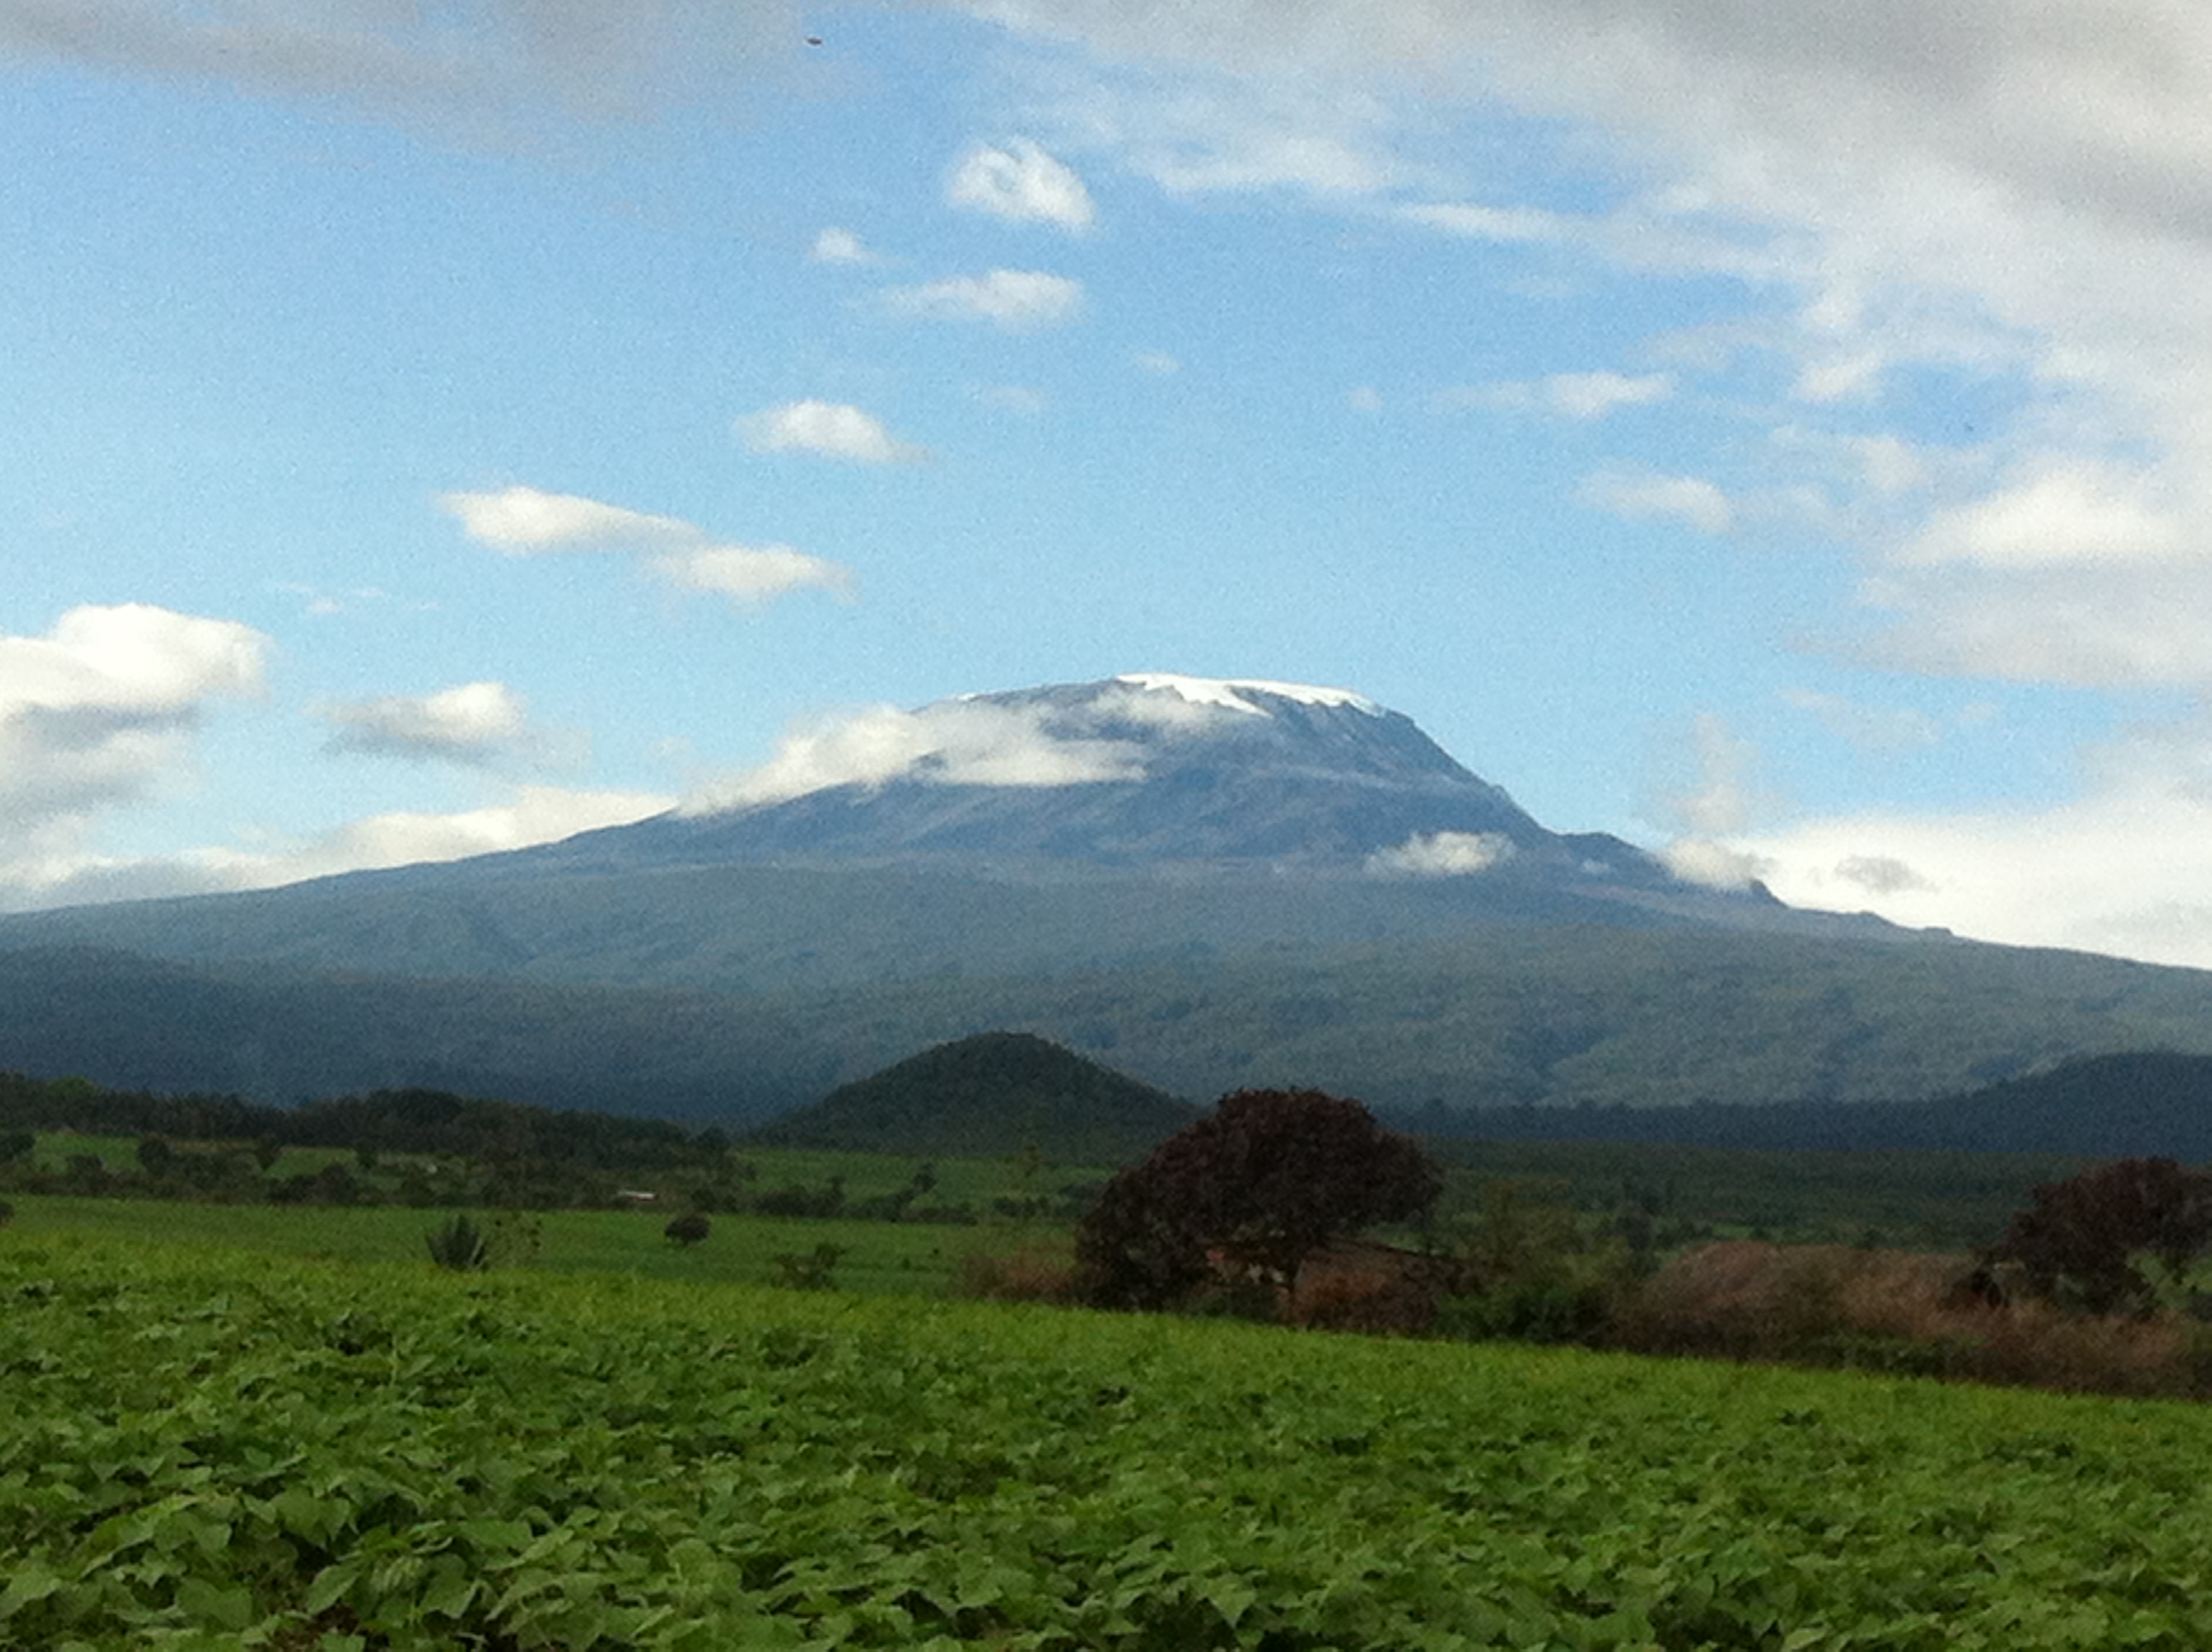 tip of mount Kilimanjaro, shot from the ground on a rare clear-sky day